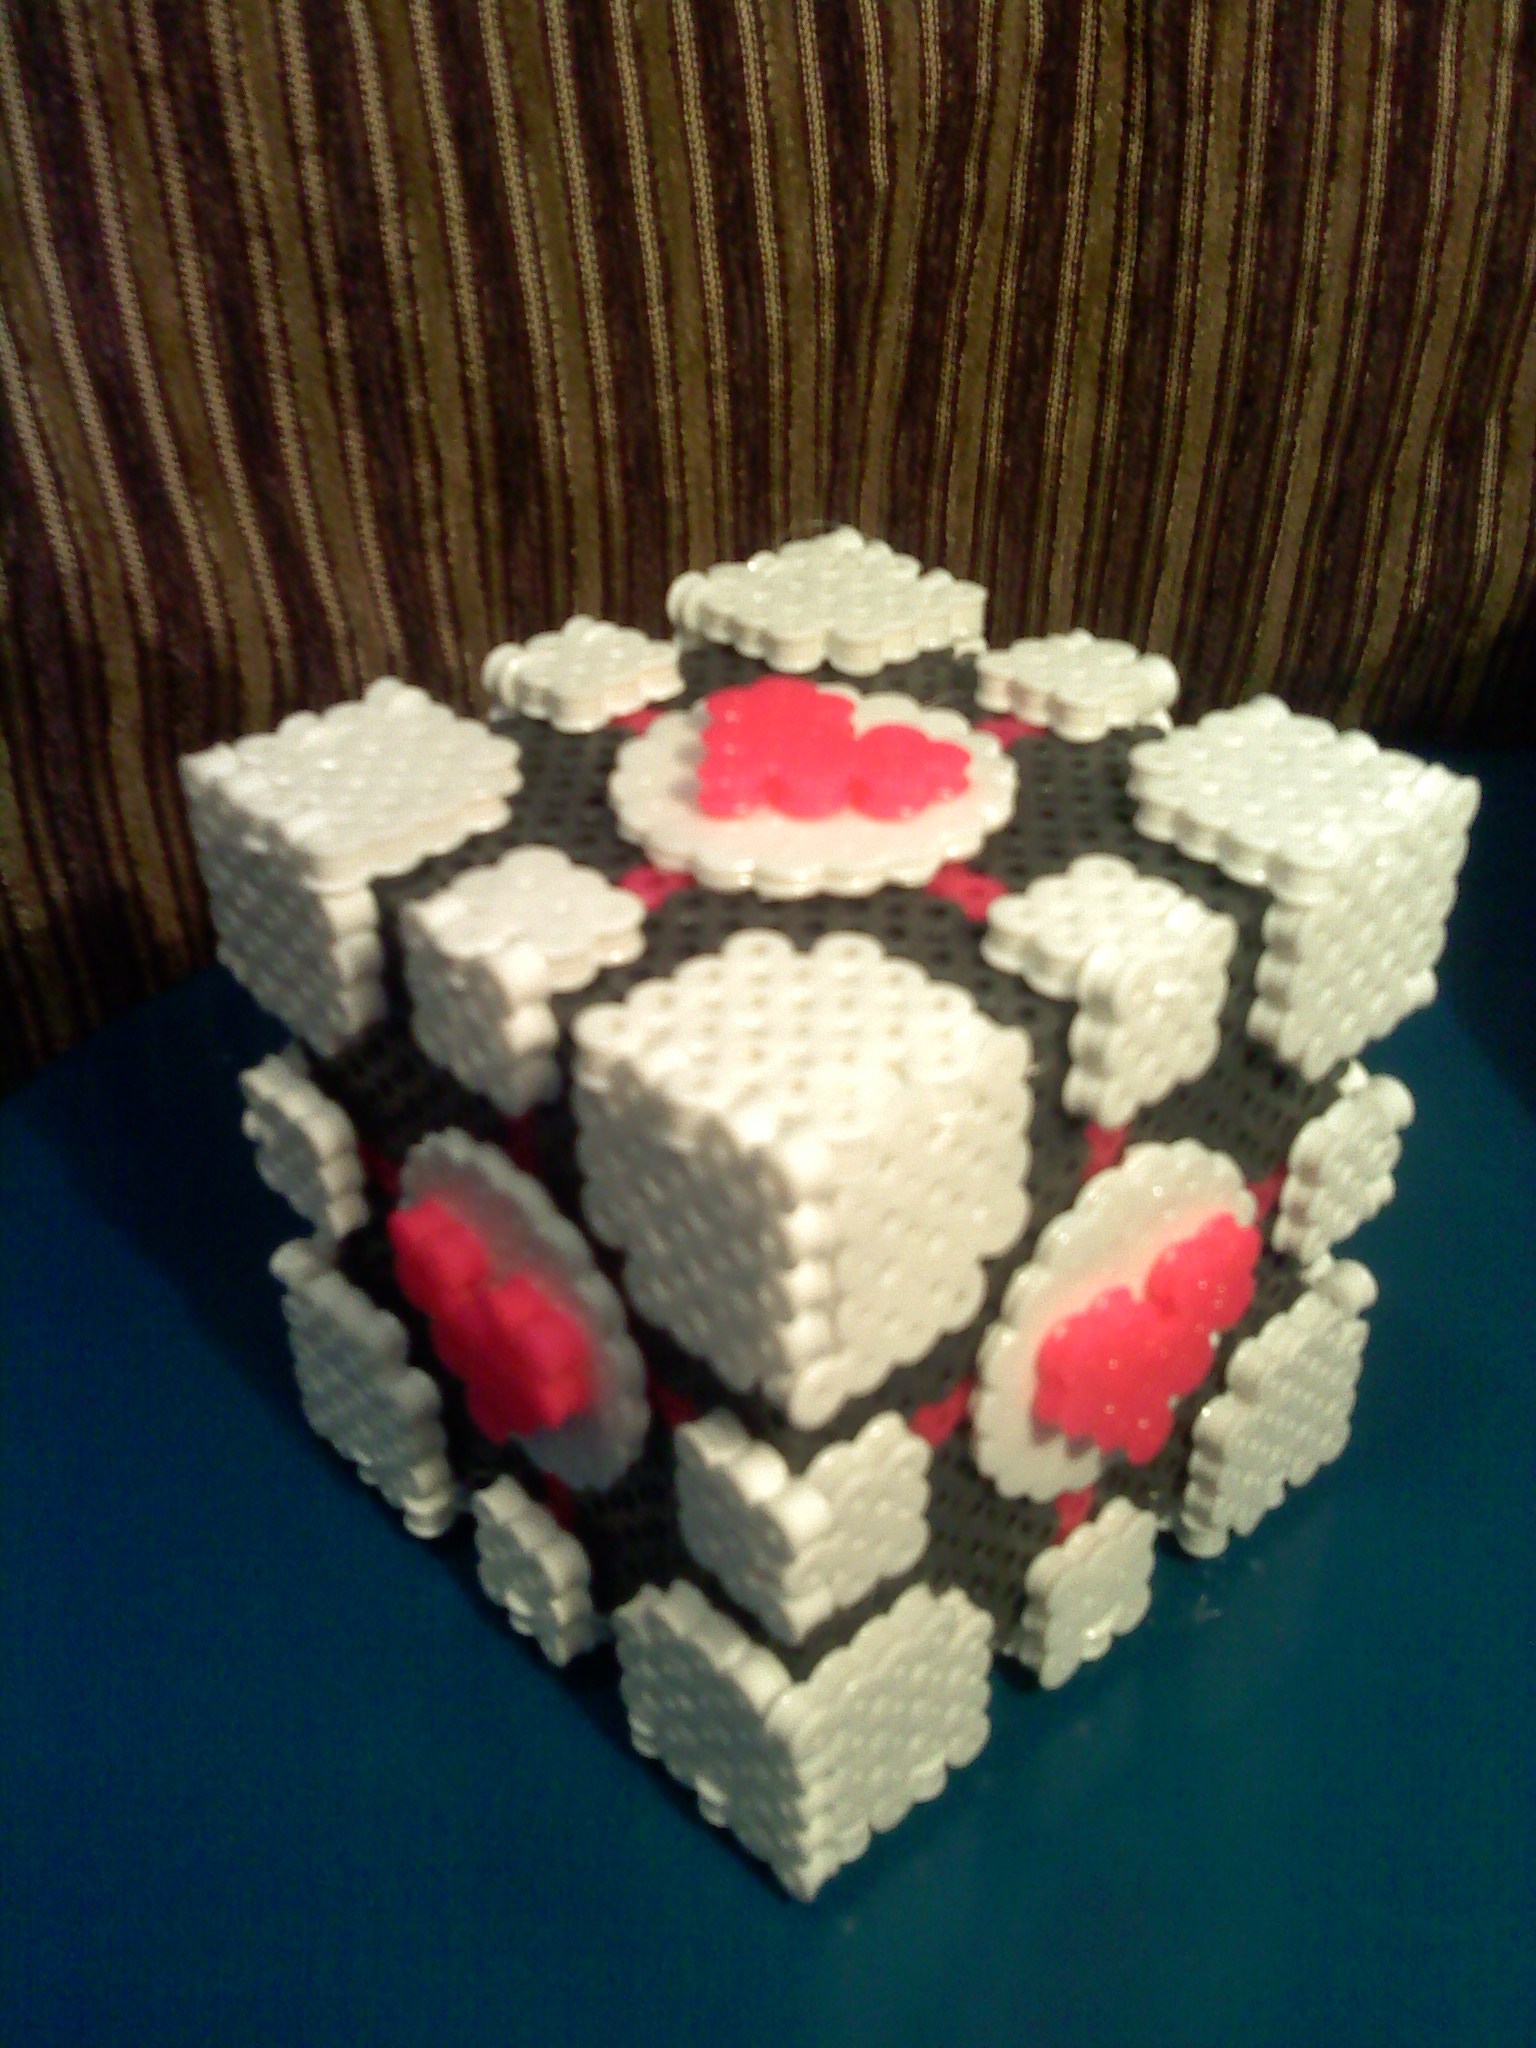 How to Make a Companion Cube